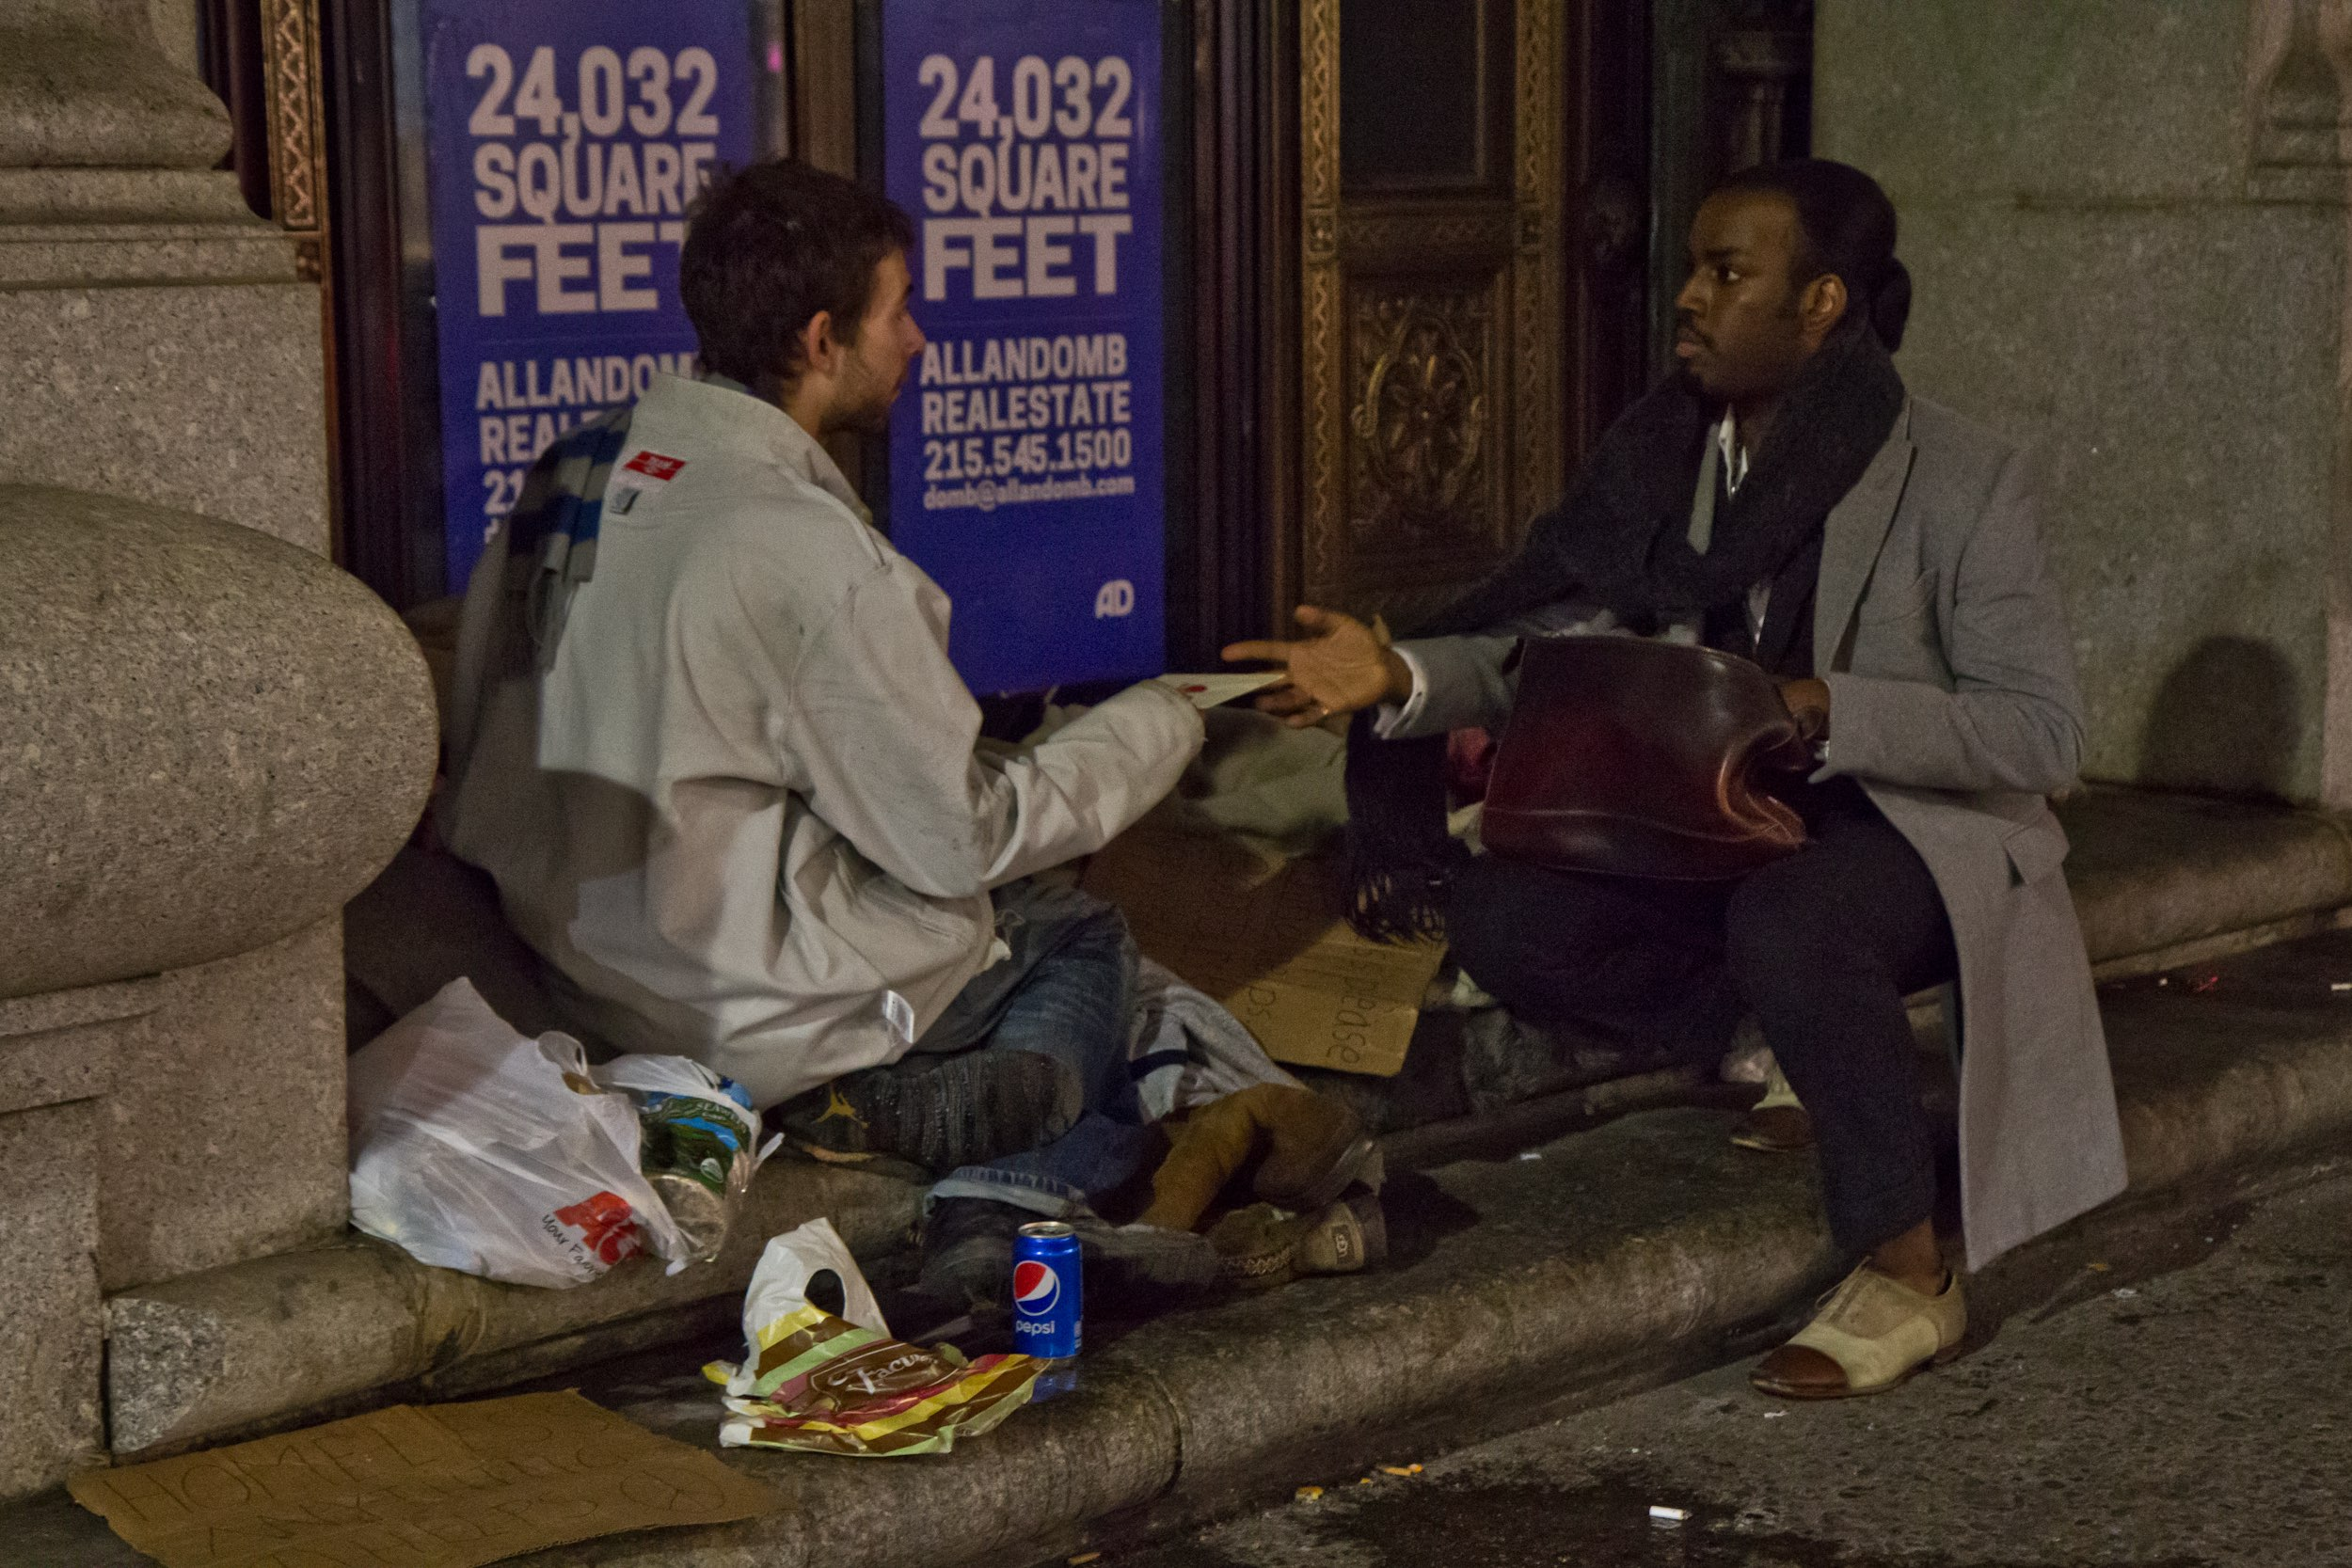 David Alexander Jenkins has given Christmas cards to people living on the street in Philadelphia for the past 10 years.